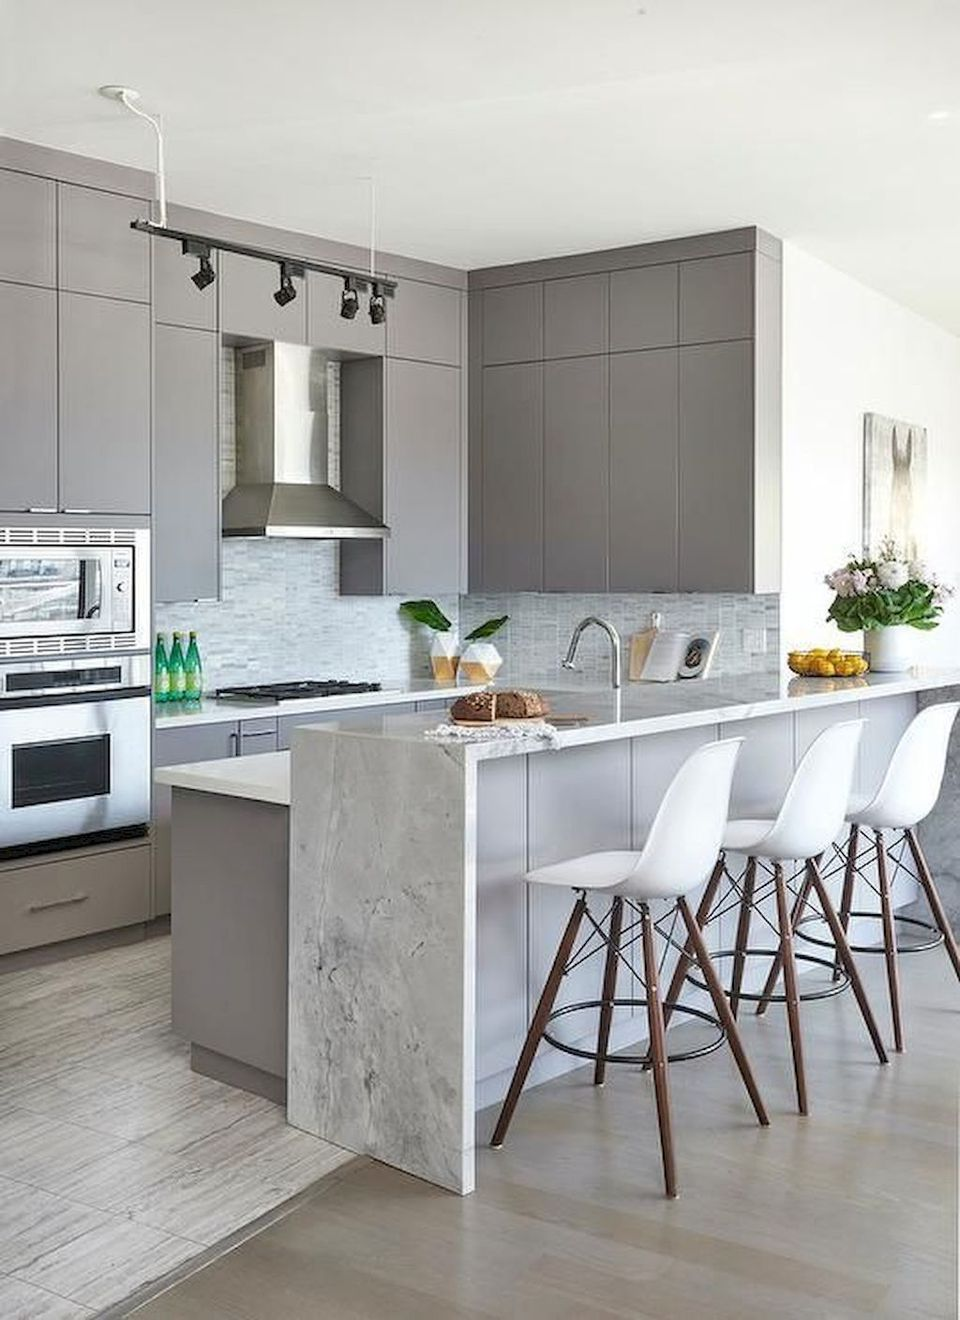 Gorgeous Kitchens With Waterfall Countertops in 2020 ... on Modern Kitchen Countertop Decor  id=76470